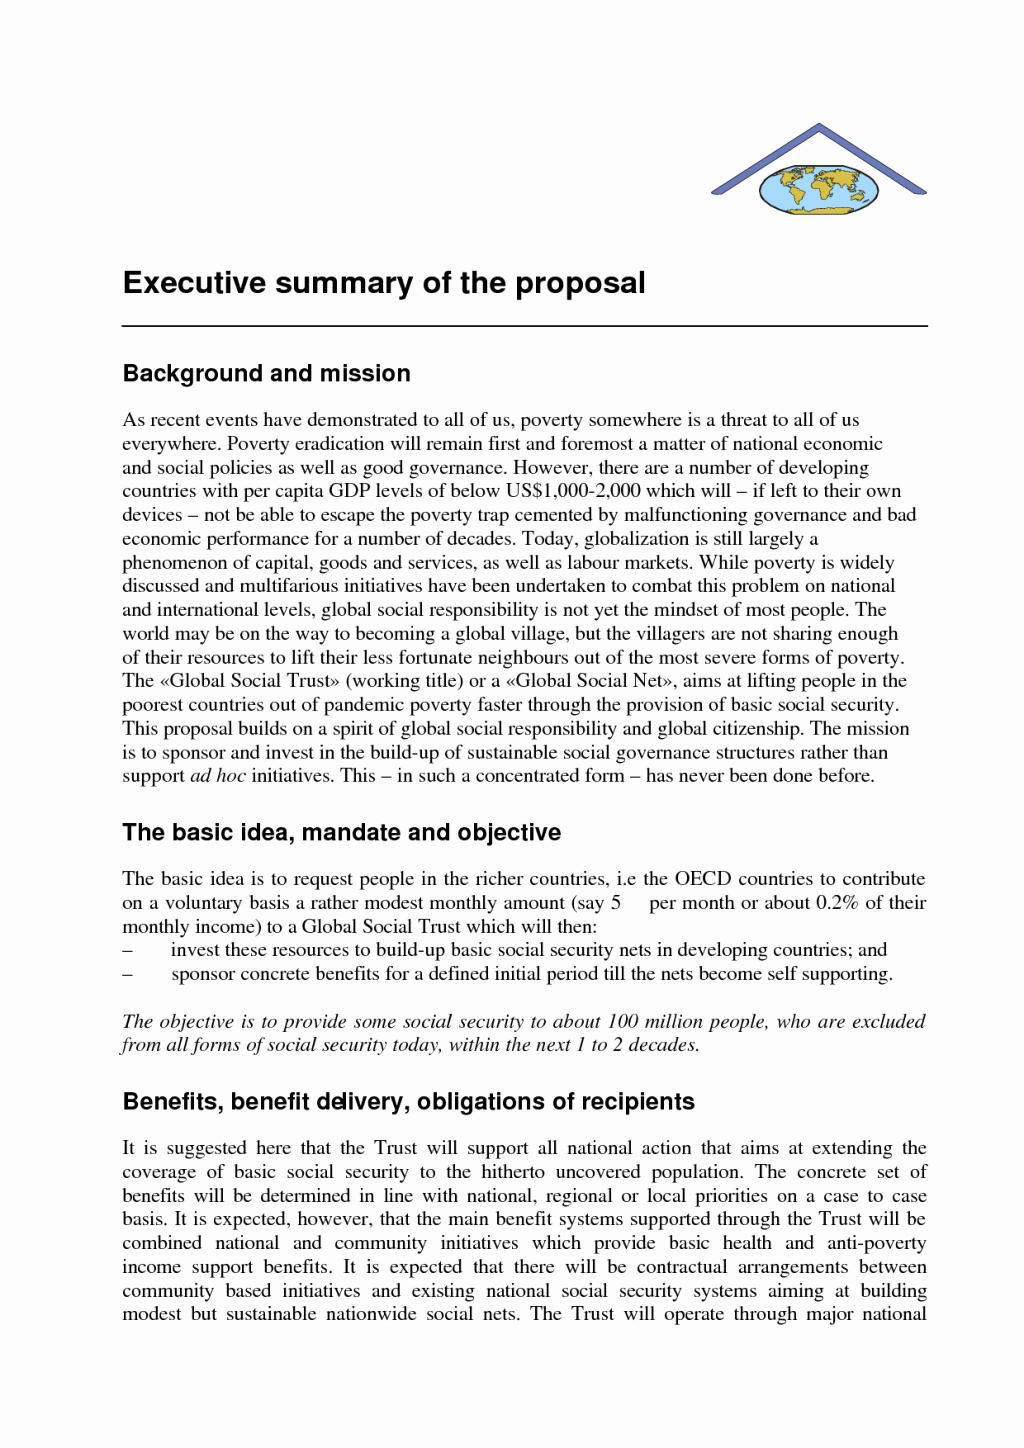 Executive Summary Sample for Proposal Unique Phd Research Proposal Summary Executive format Example